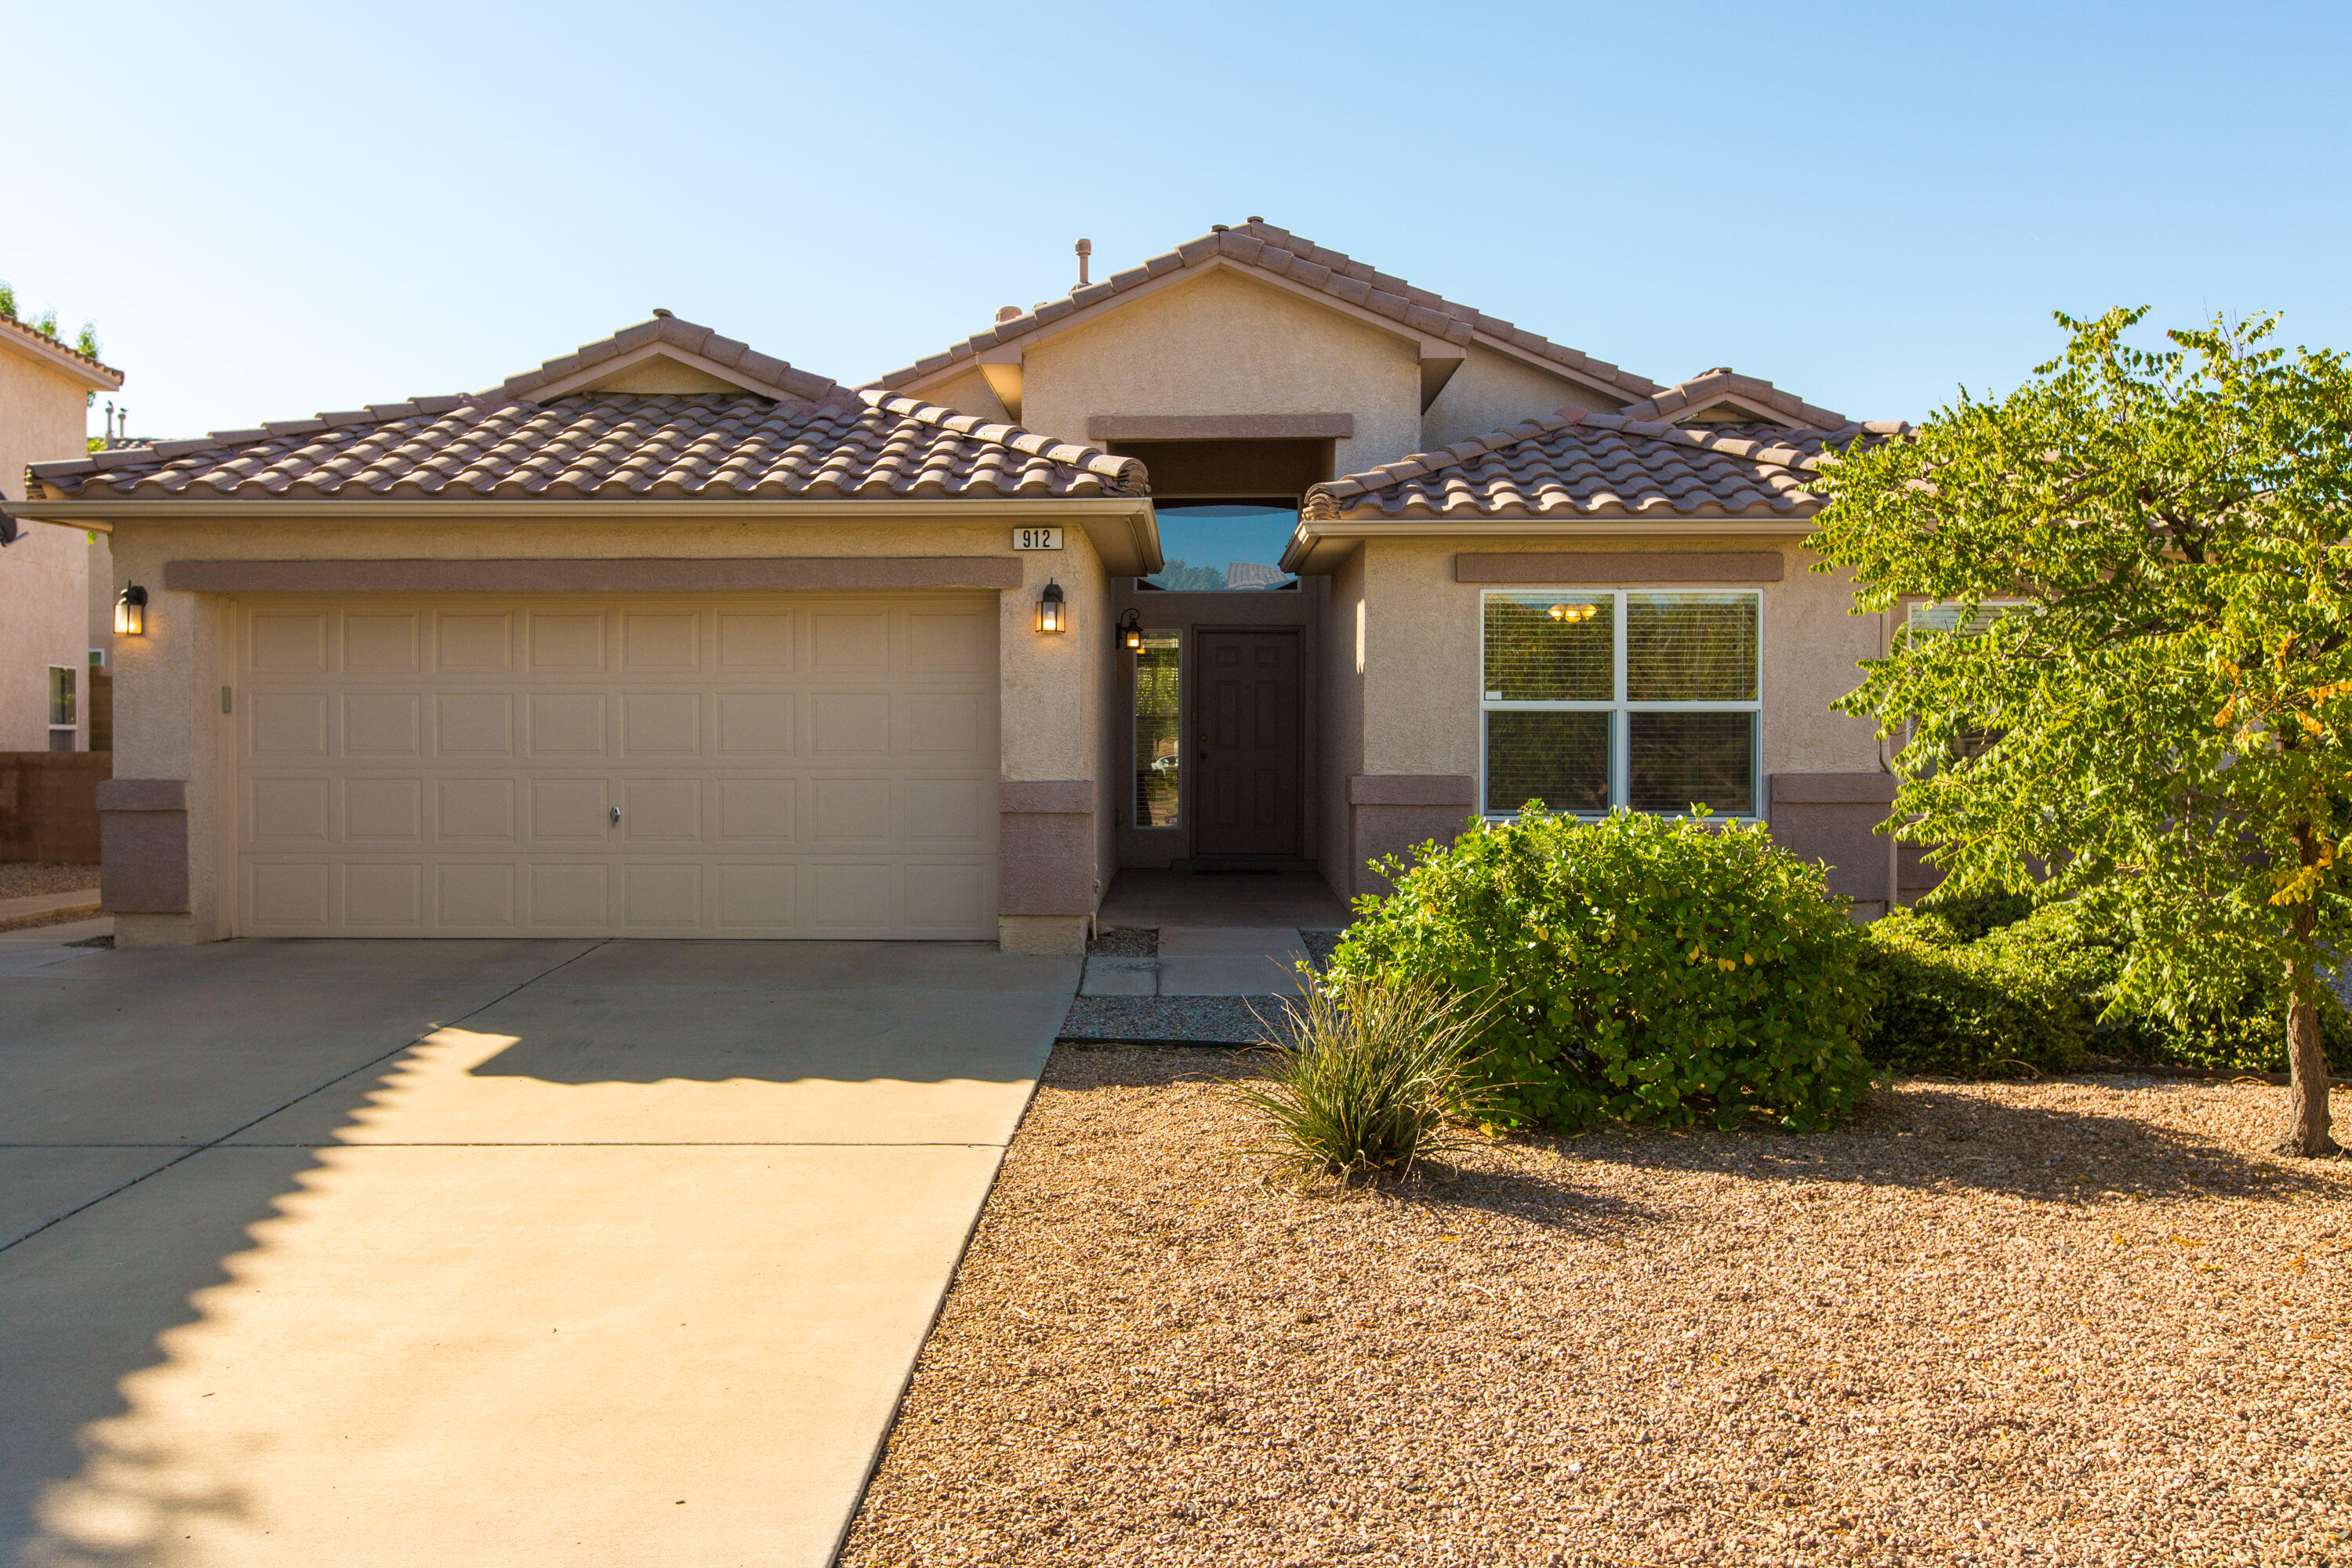 One of a kind Vista Del Norte home!  Fantastic layout, with two living areas and windows on every wall for maximized light.  This home offers one of the larger lots in the neighborhood with a backyard perfect for entertaining, including a grand fathered in  built in storage shed.  View this home today!